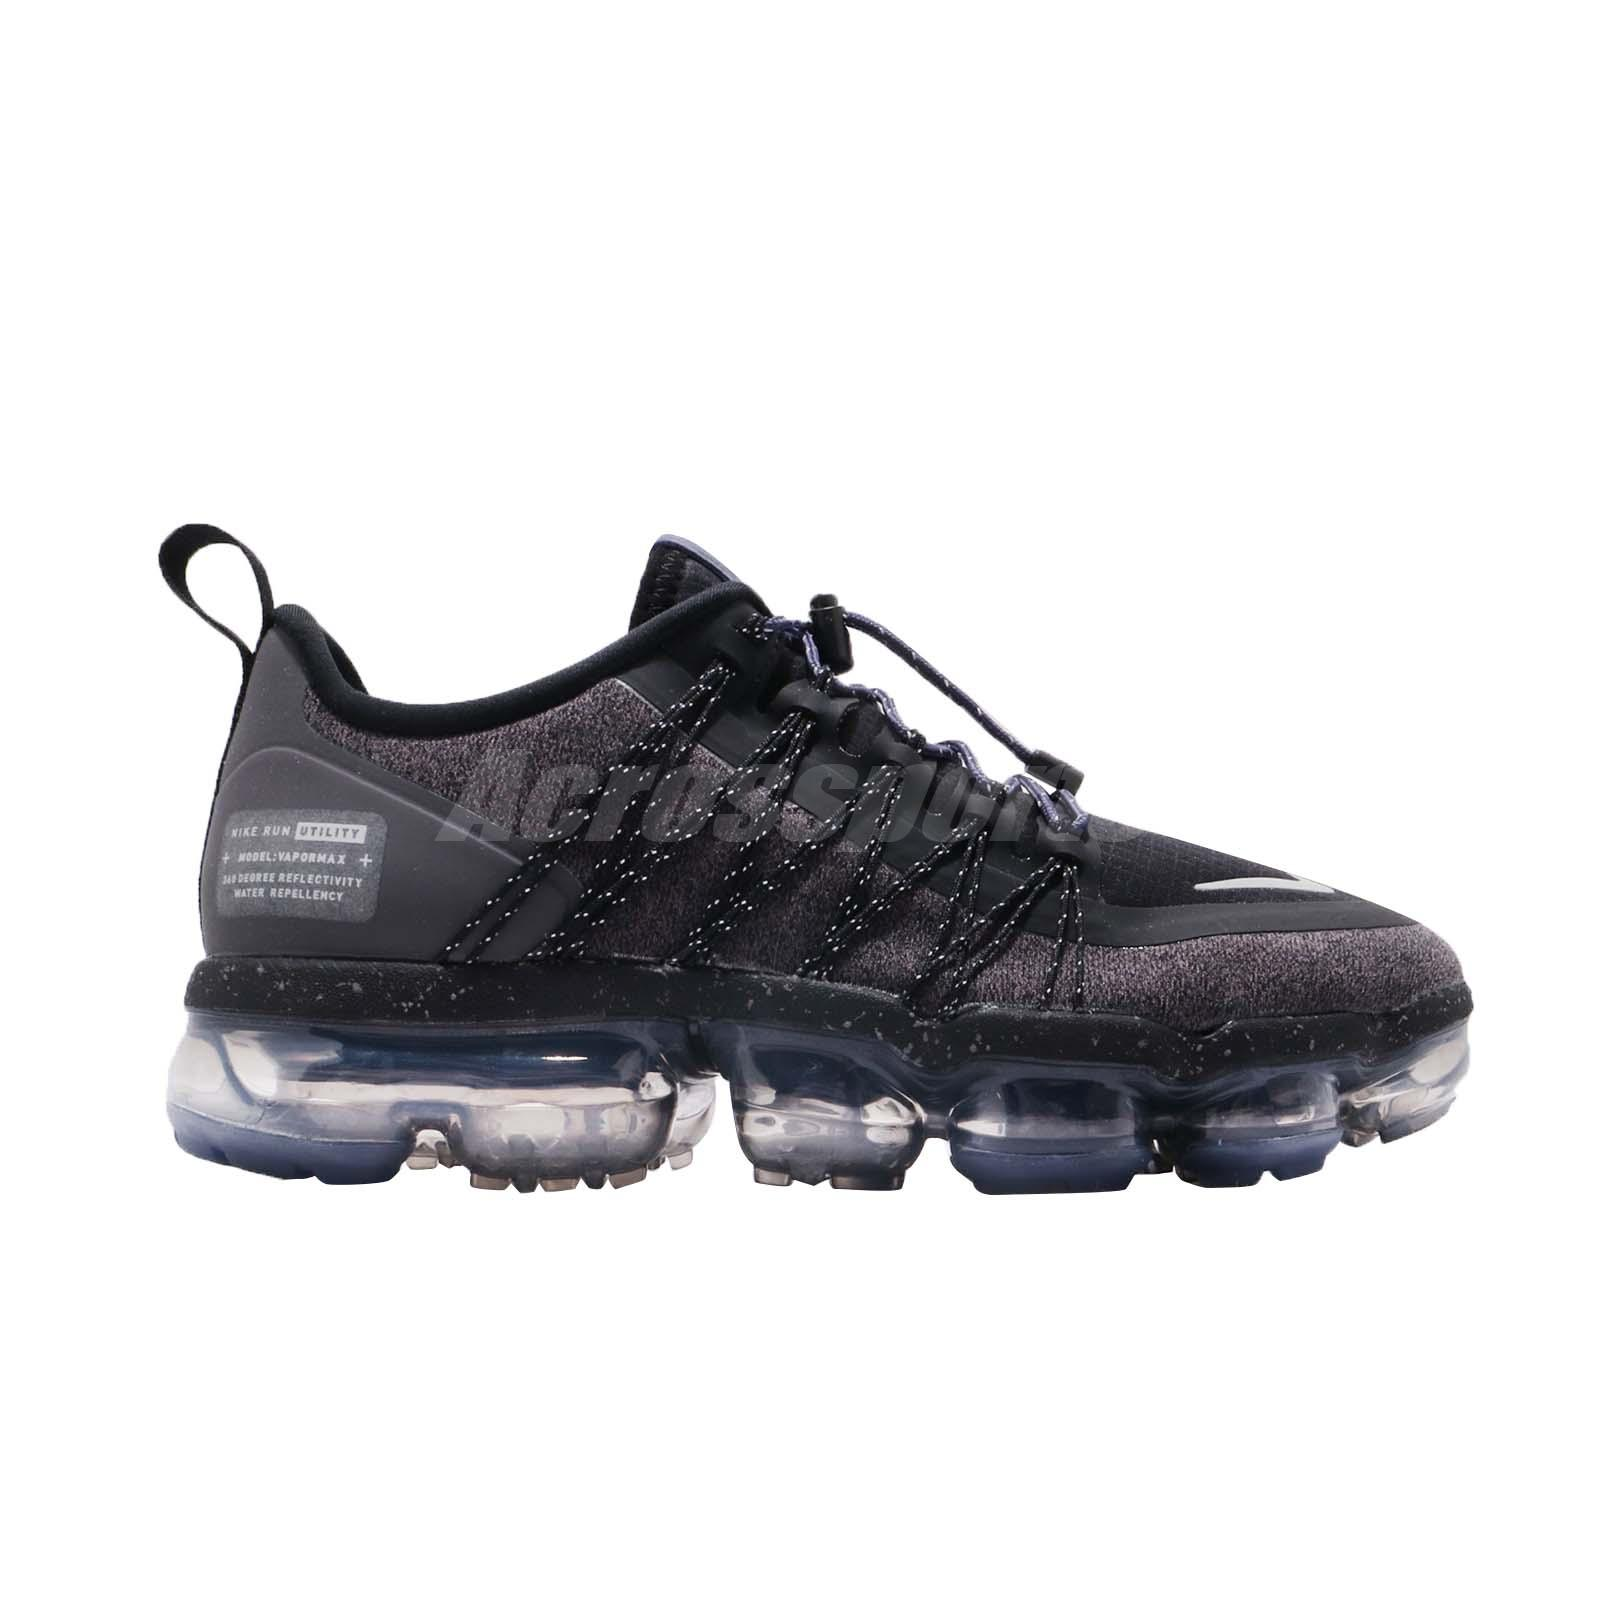 1a82899d9f Nike Wmns Air Vapormax Run Utility Black Reflect Silver Running ...